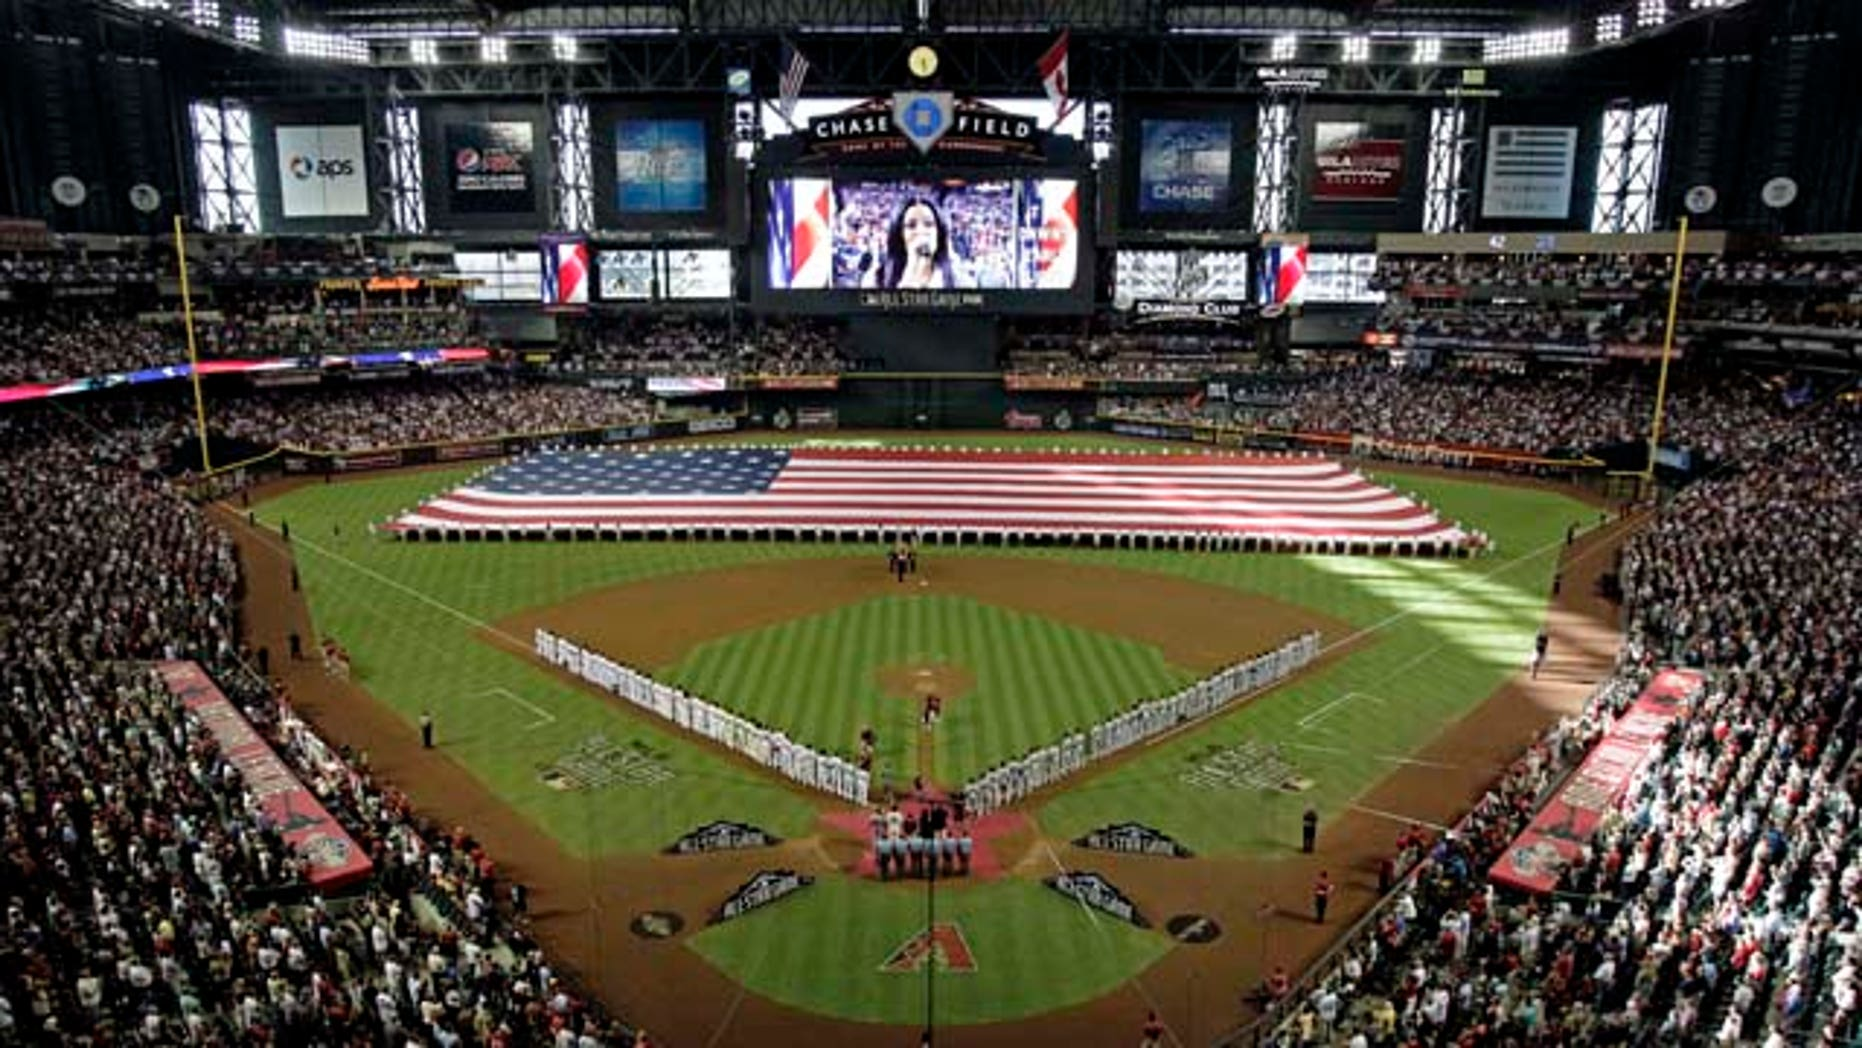 National and American League teams line the field as Jordin Sparks sings the national anthem before the MLB All-Star baseball game Tuesday, July 12, 2011, in Phoenix. (AP Photo/Matt York)